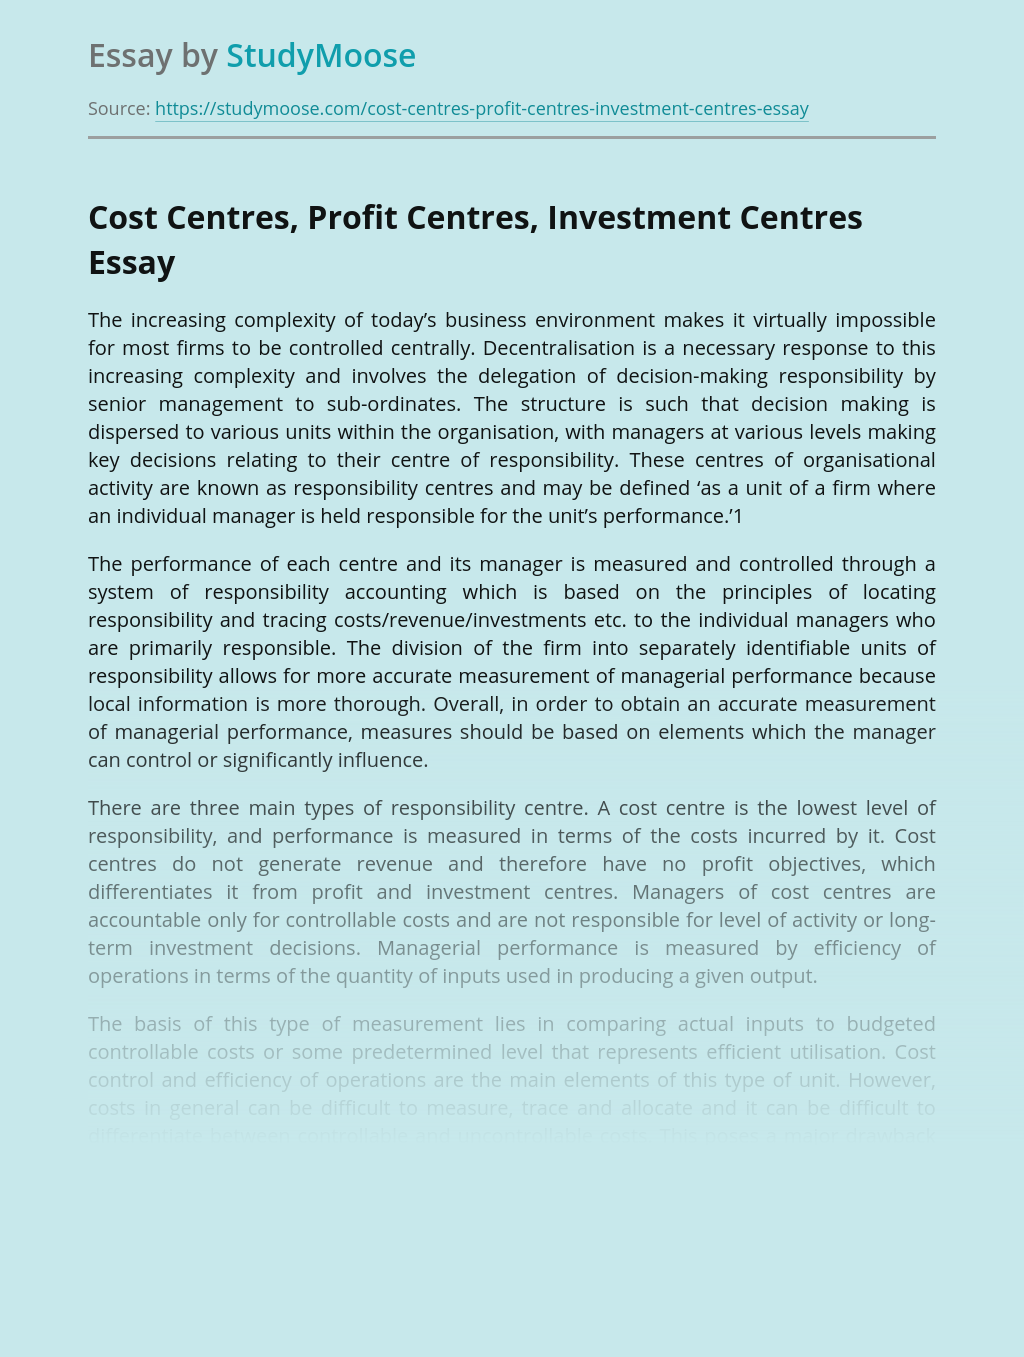 Cost Centres, Profit Centres and Investment Centres in Business